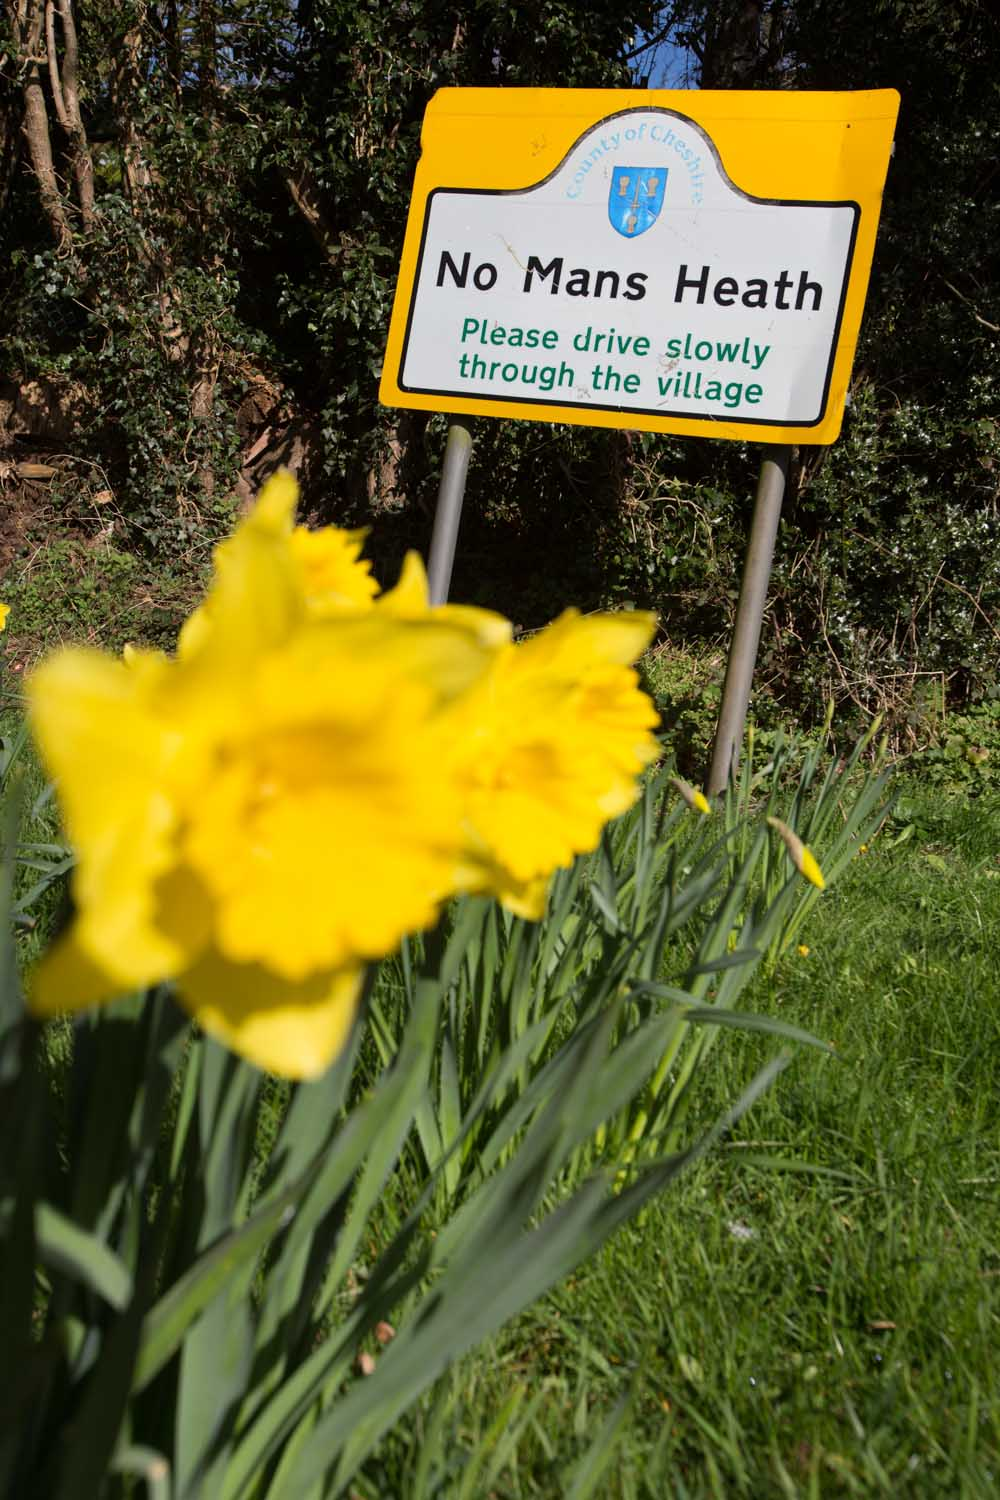 Picturesque spring view of daffodils in full bloom with No Man's Heath village sign in the background.